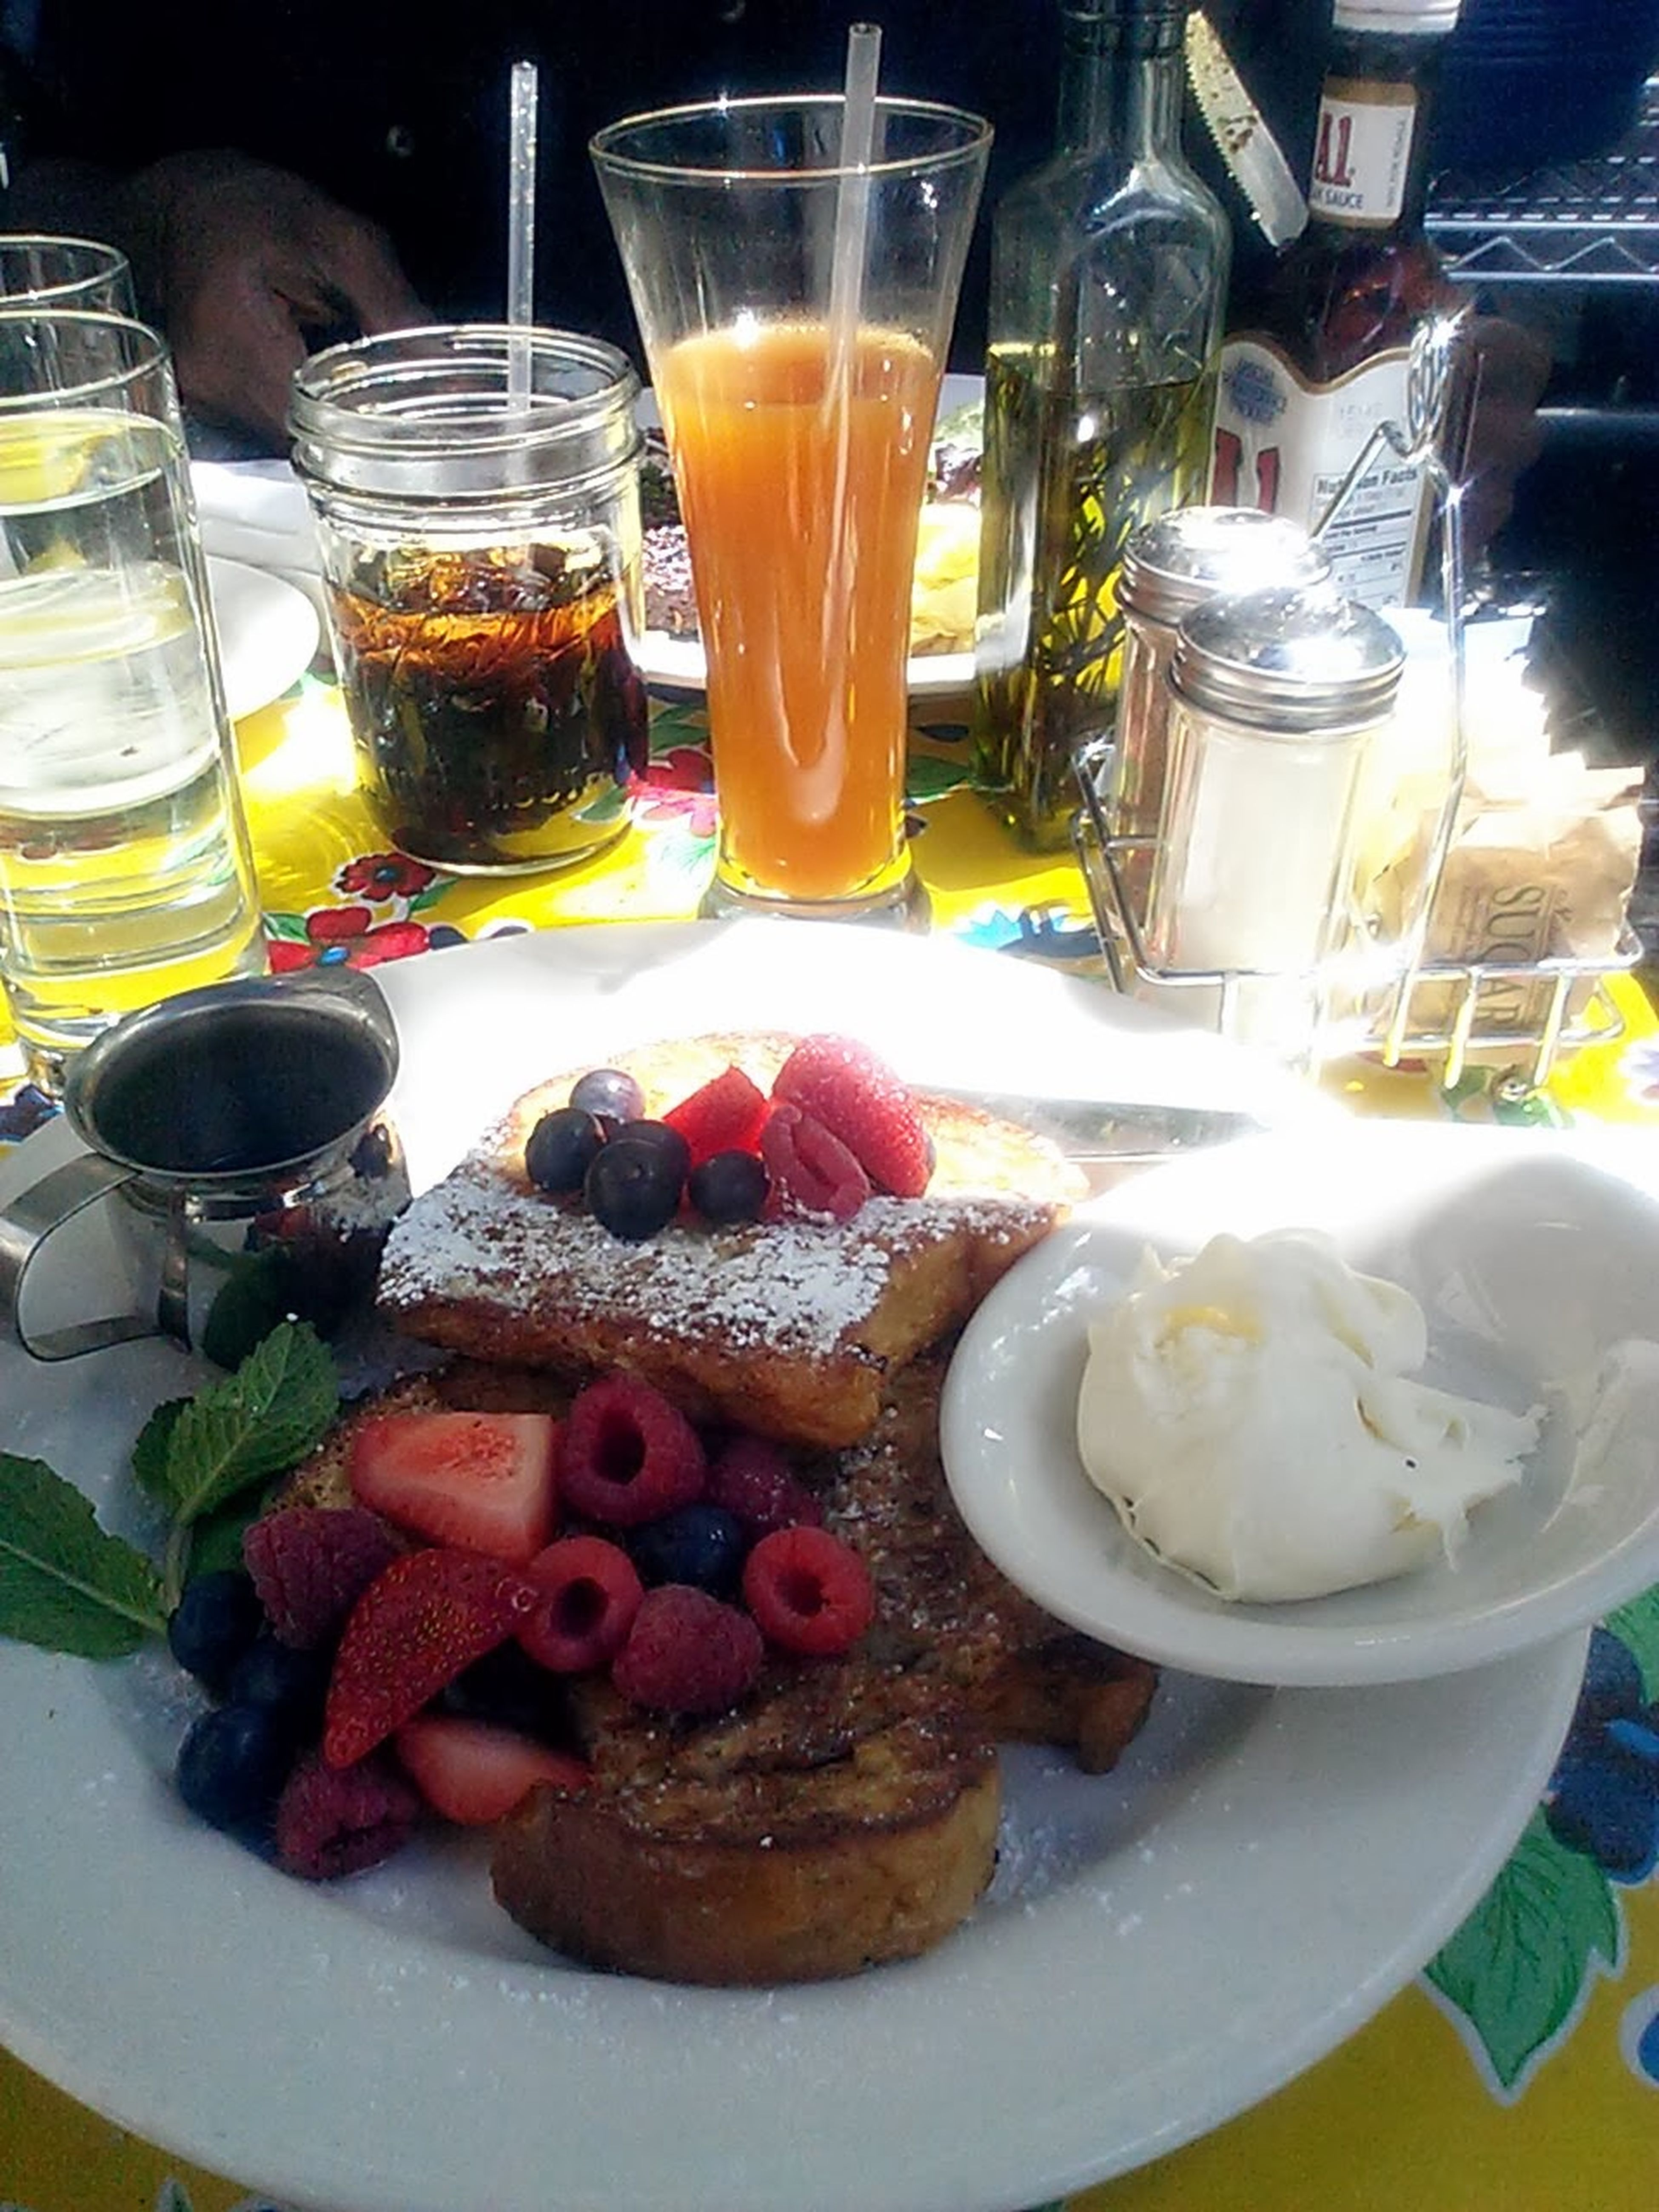 The EyeEm Breakfast Club Italian Frenchtoast Brunch topped w/ raspberries, blueberries, syrup... mascaprone on the side & a tall glass of fresh apricot juice. yum!